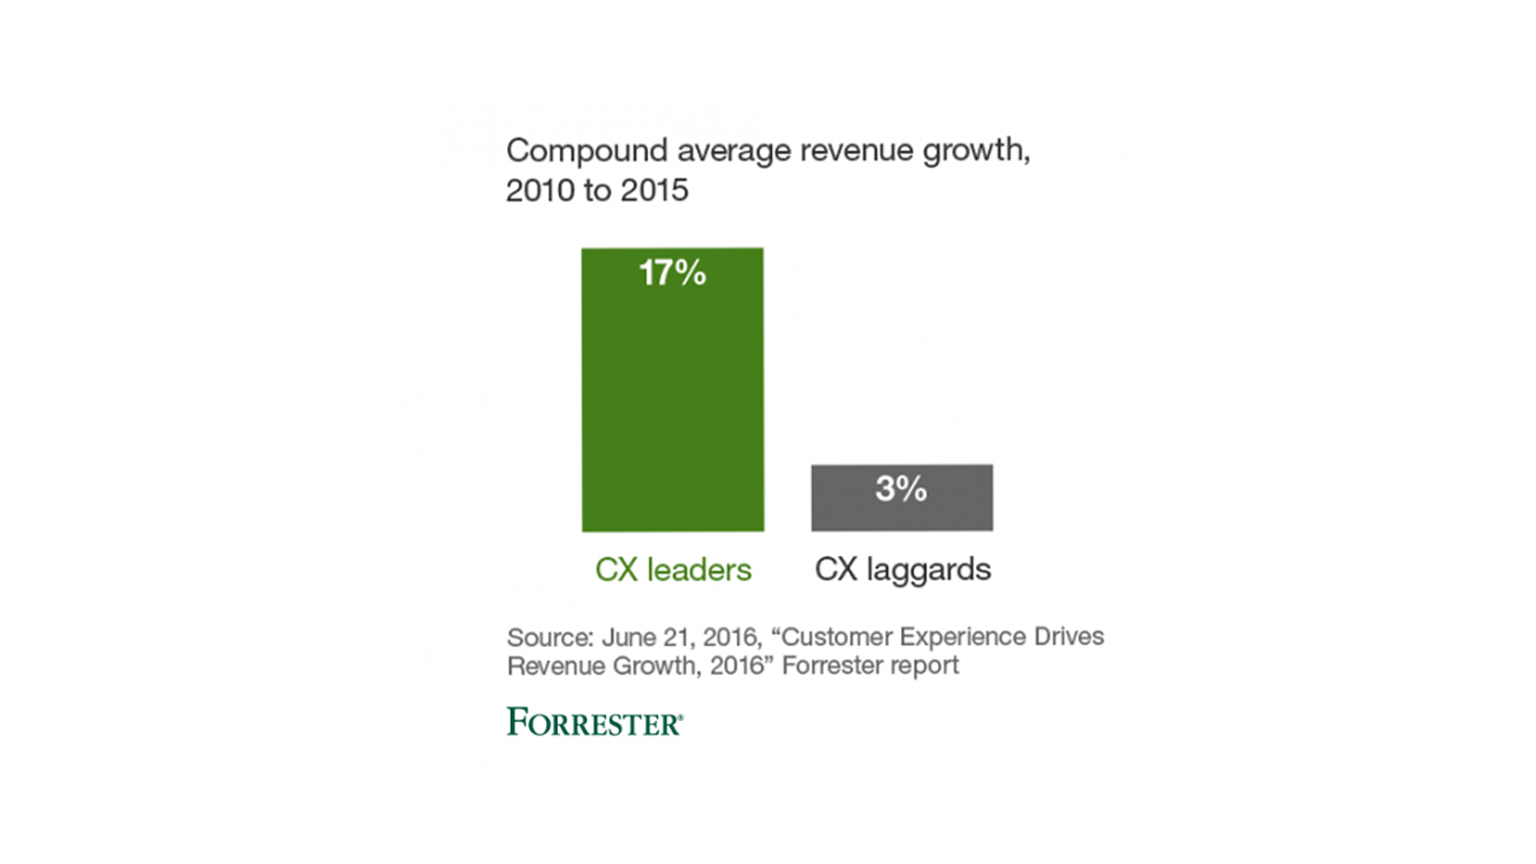 CX leaders grow revenue faster than CX laggards